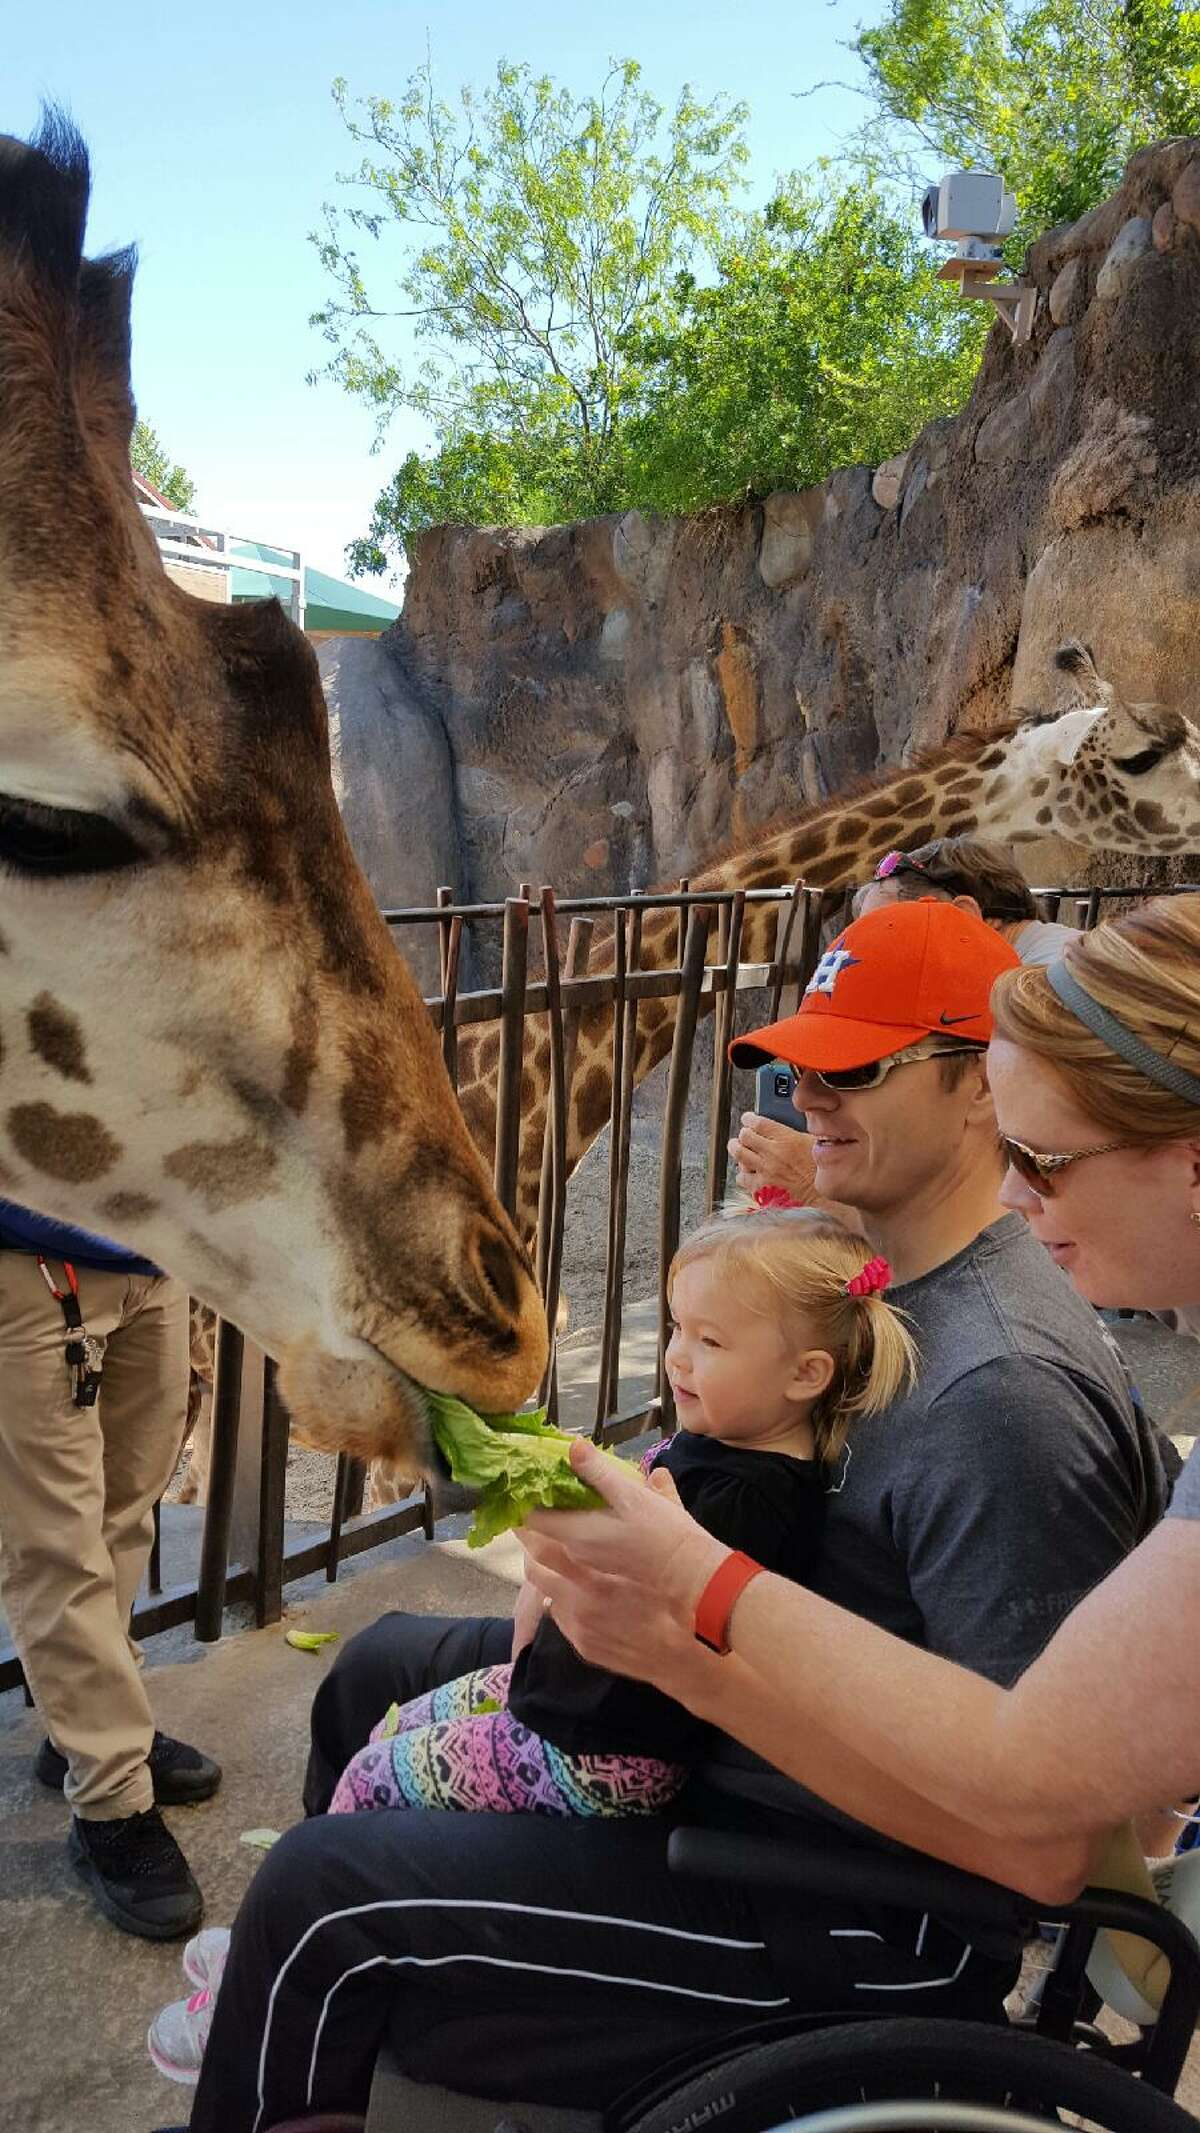 Warnke and his family feed the Houston Zoo's giraffes during a trip for patients put on by TIRR.